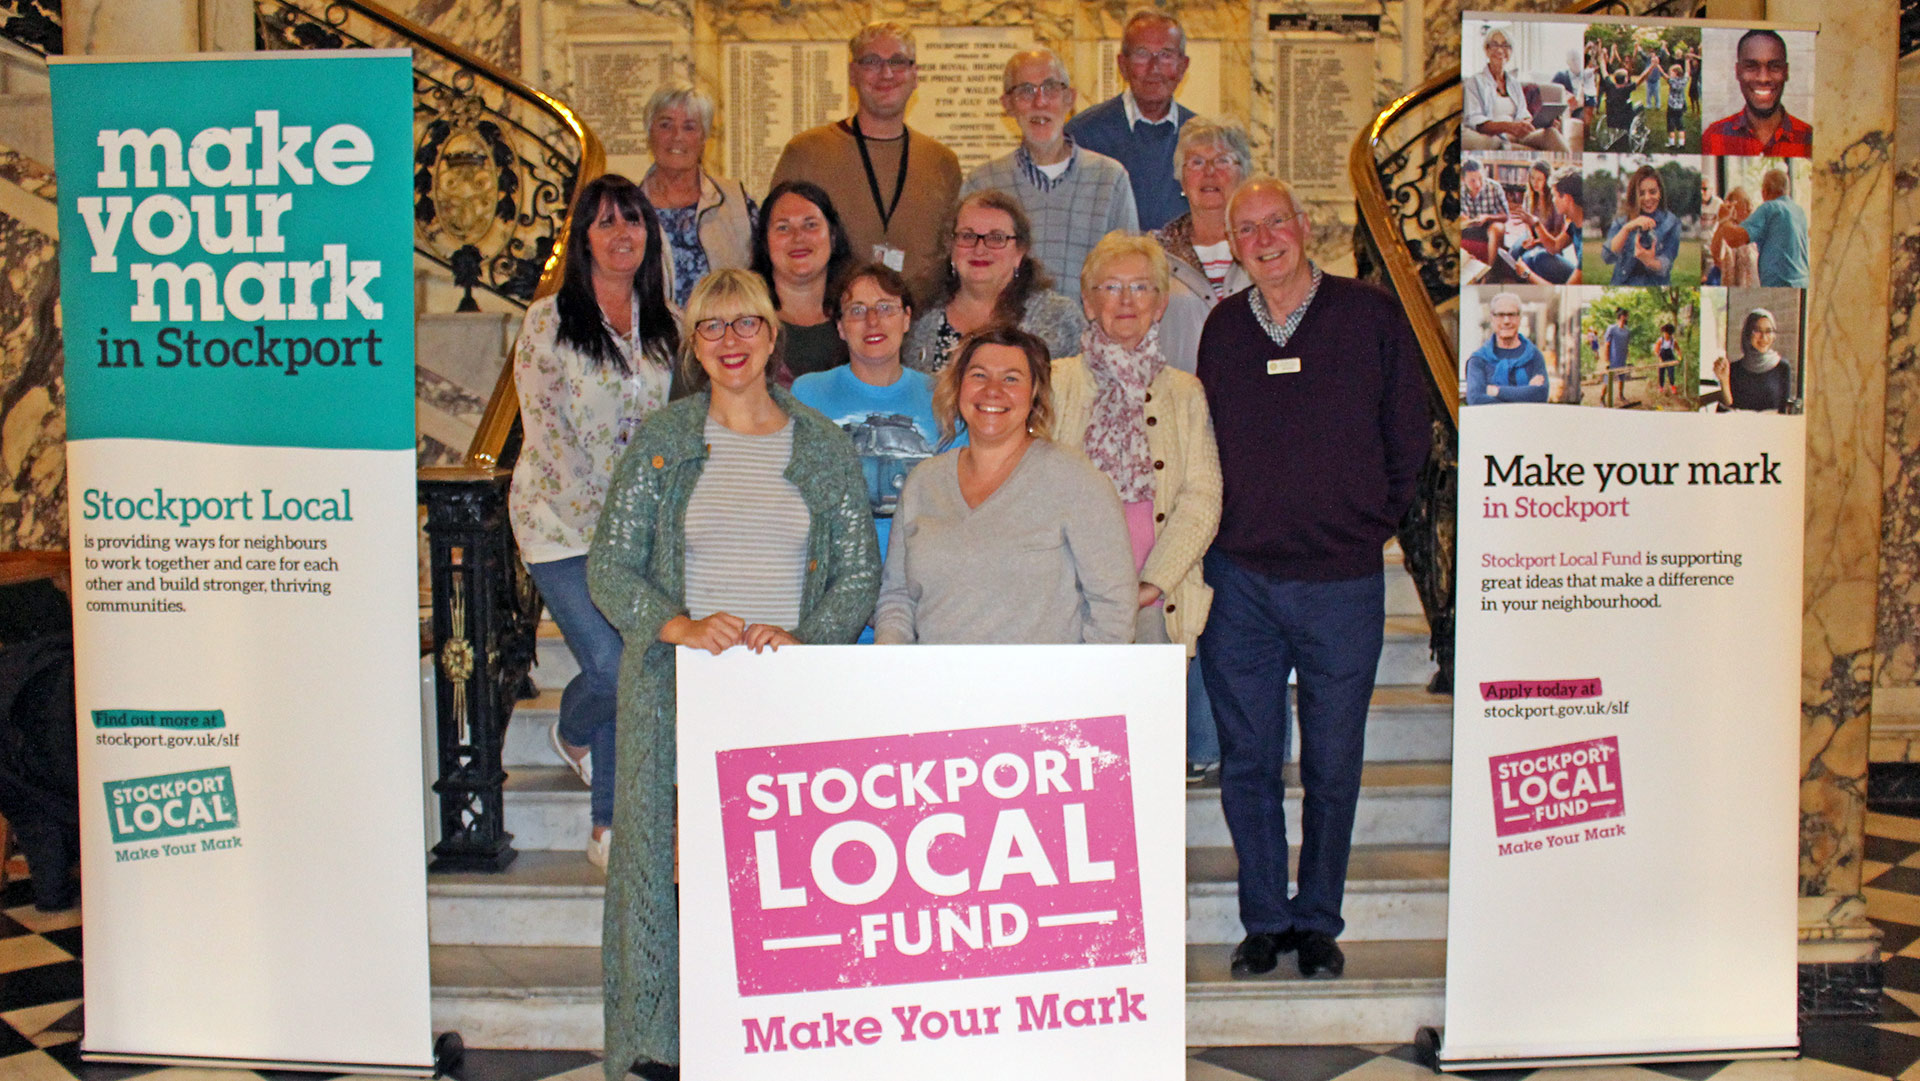 Stockport Local Fund announces the first great ideas that will make a difference in our neighbourhoods